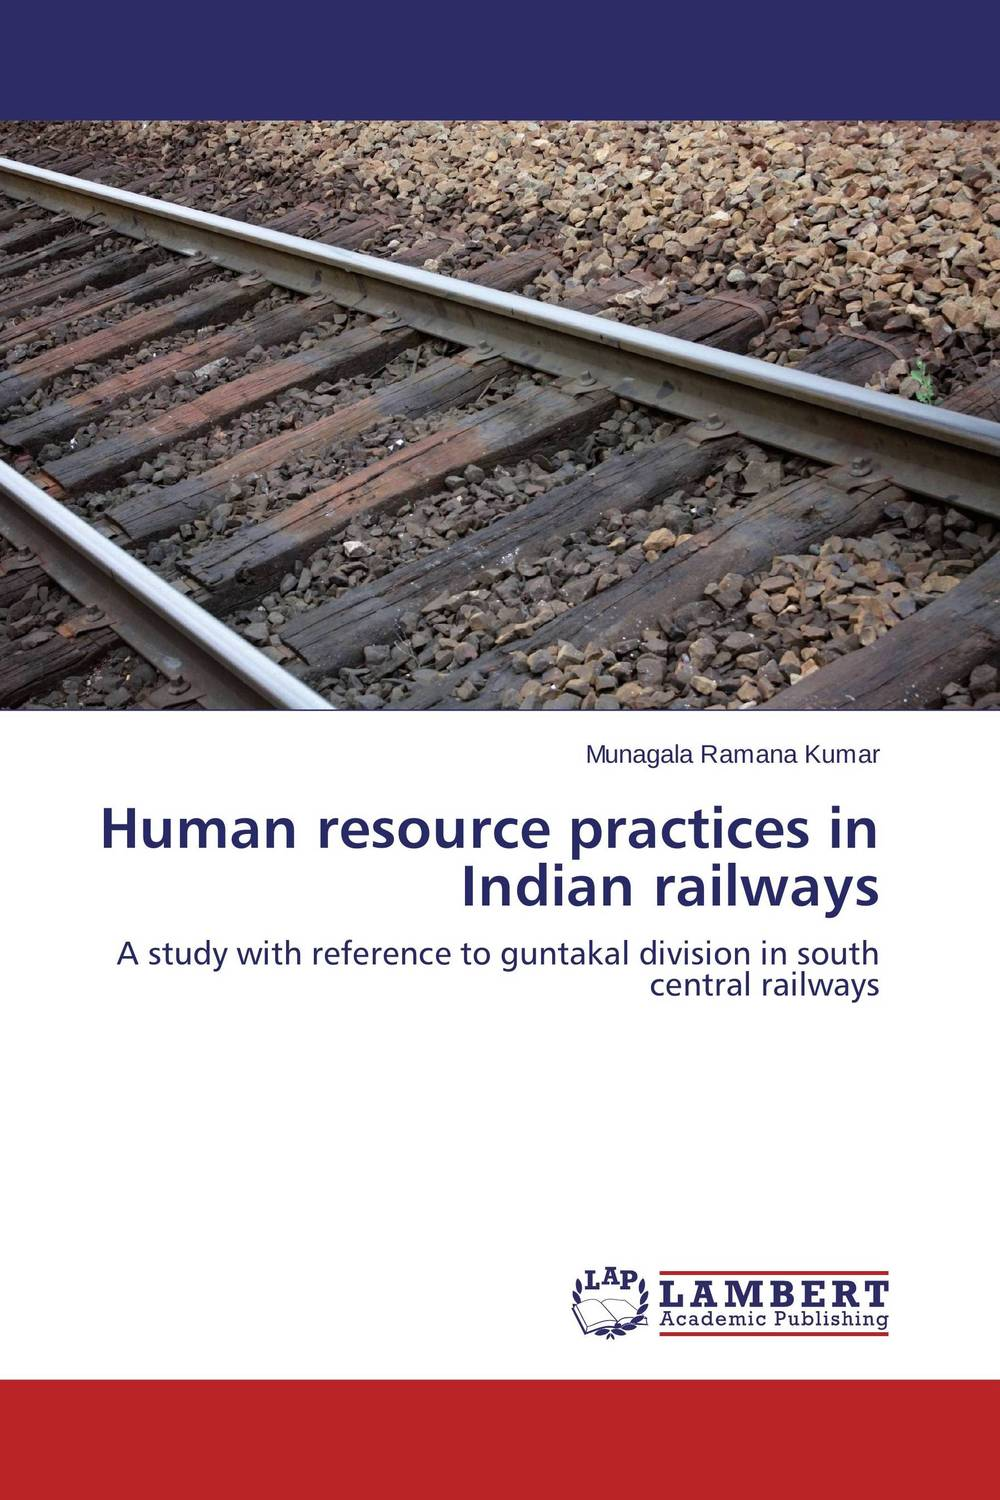 Human resource practices in Indian railways theories and practices of human resource management from quran